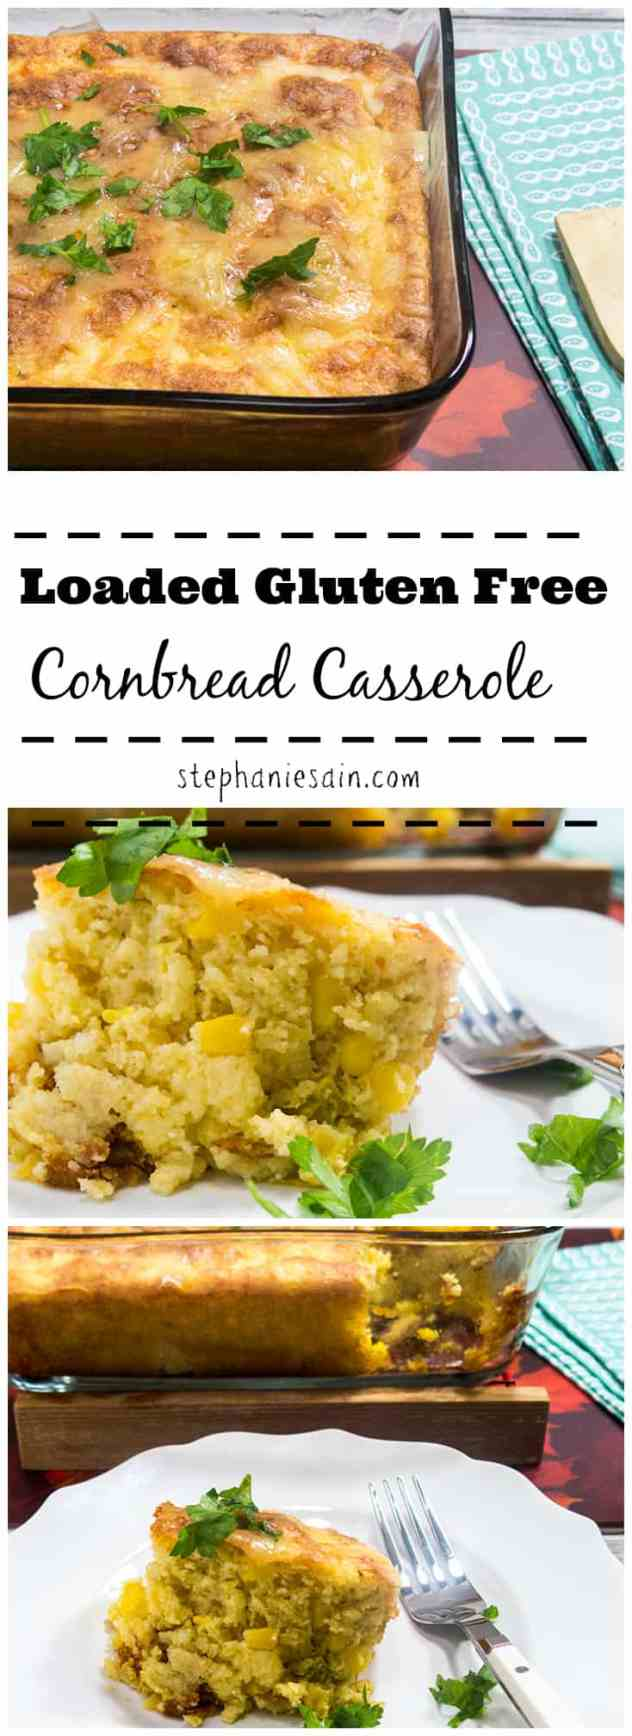 Loaded Gluten Free Cornbread Casserole